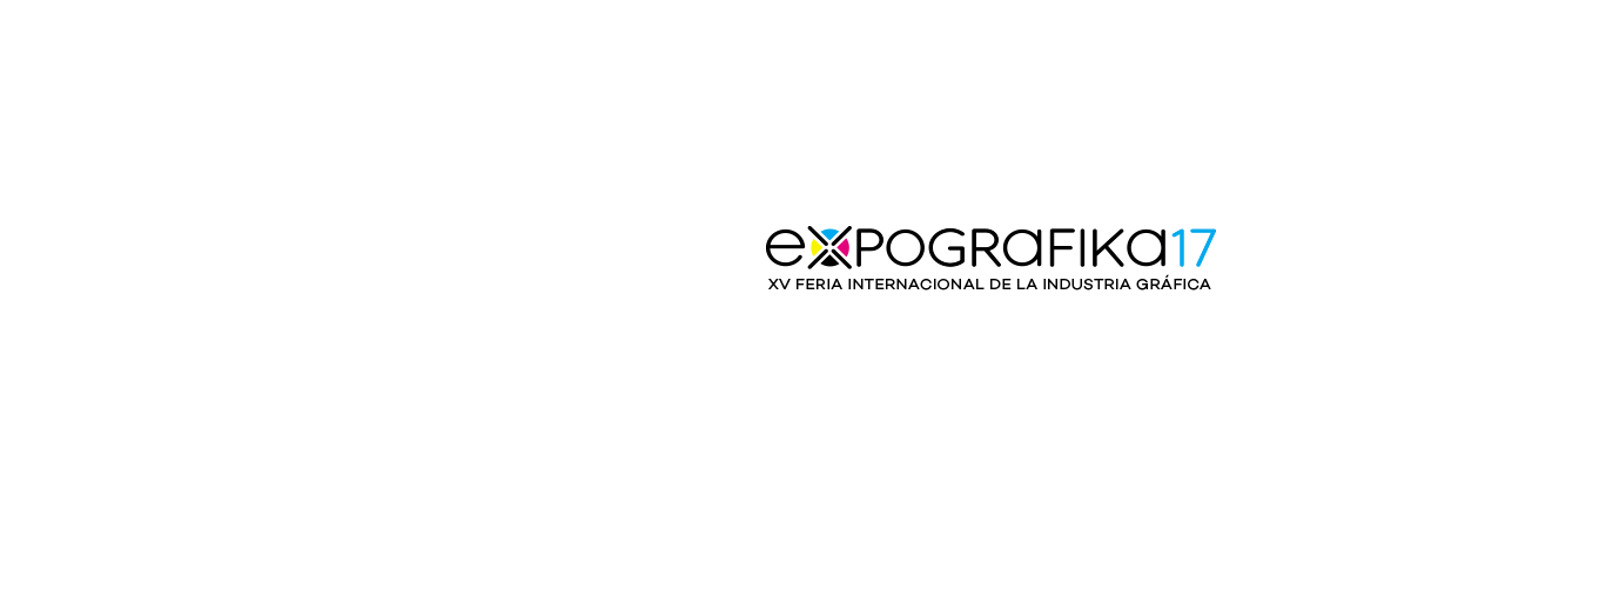 Tauler goes to Expografica